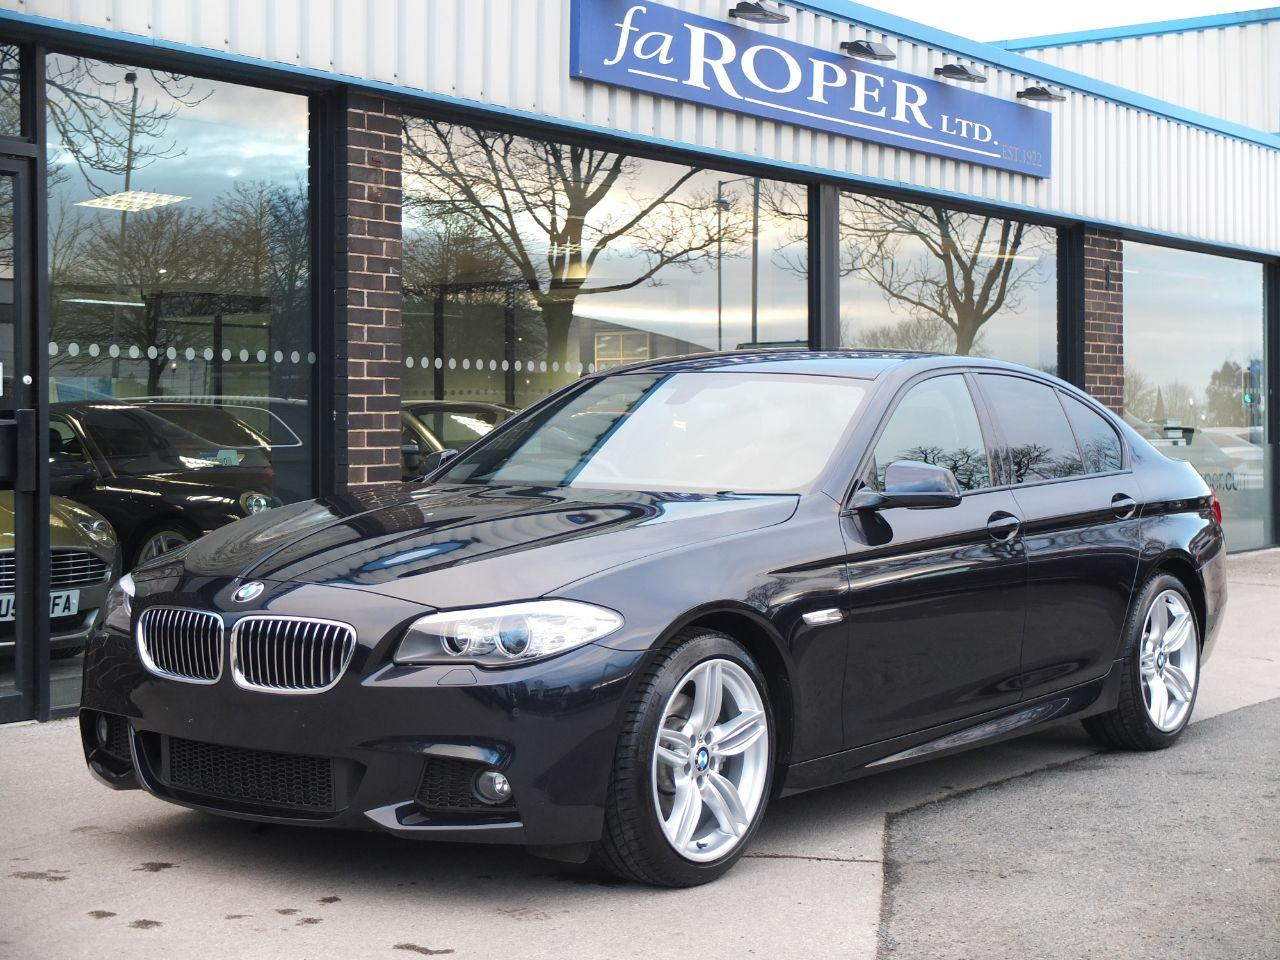 BMW 5 Series 2.0 520d M Sport Auto [Start Stop] Business Media ++Spec Saloon Diesel Carbon Black MetallicBMW 5 Series 2.0 520d M Sport Auto [Start Stop] Business Media ++Spec Saloon Diesel Carbon Black Metallic at fa Roper Ltd Bradford